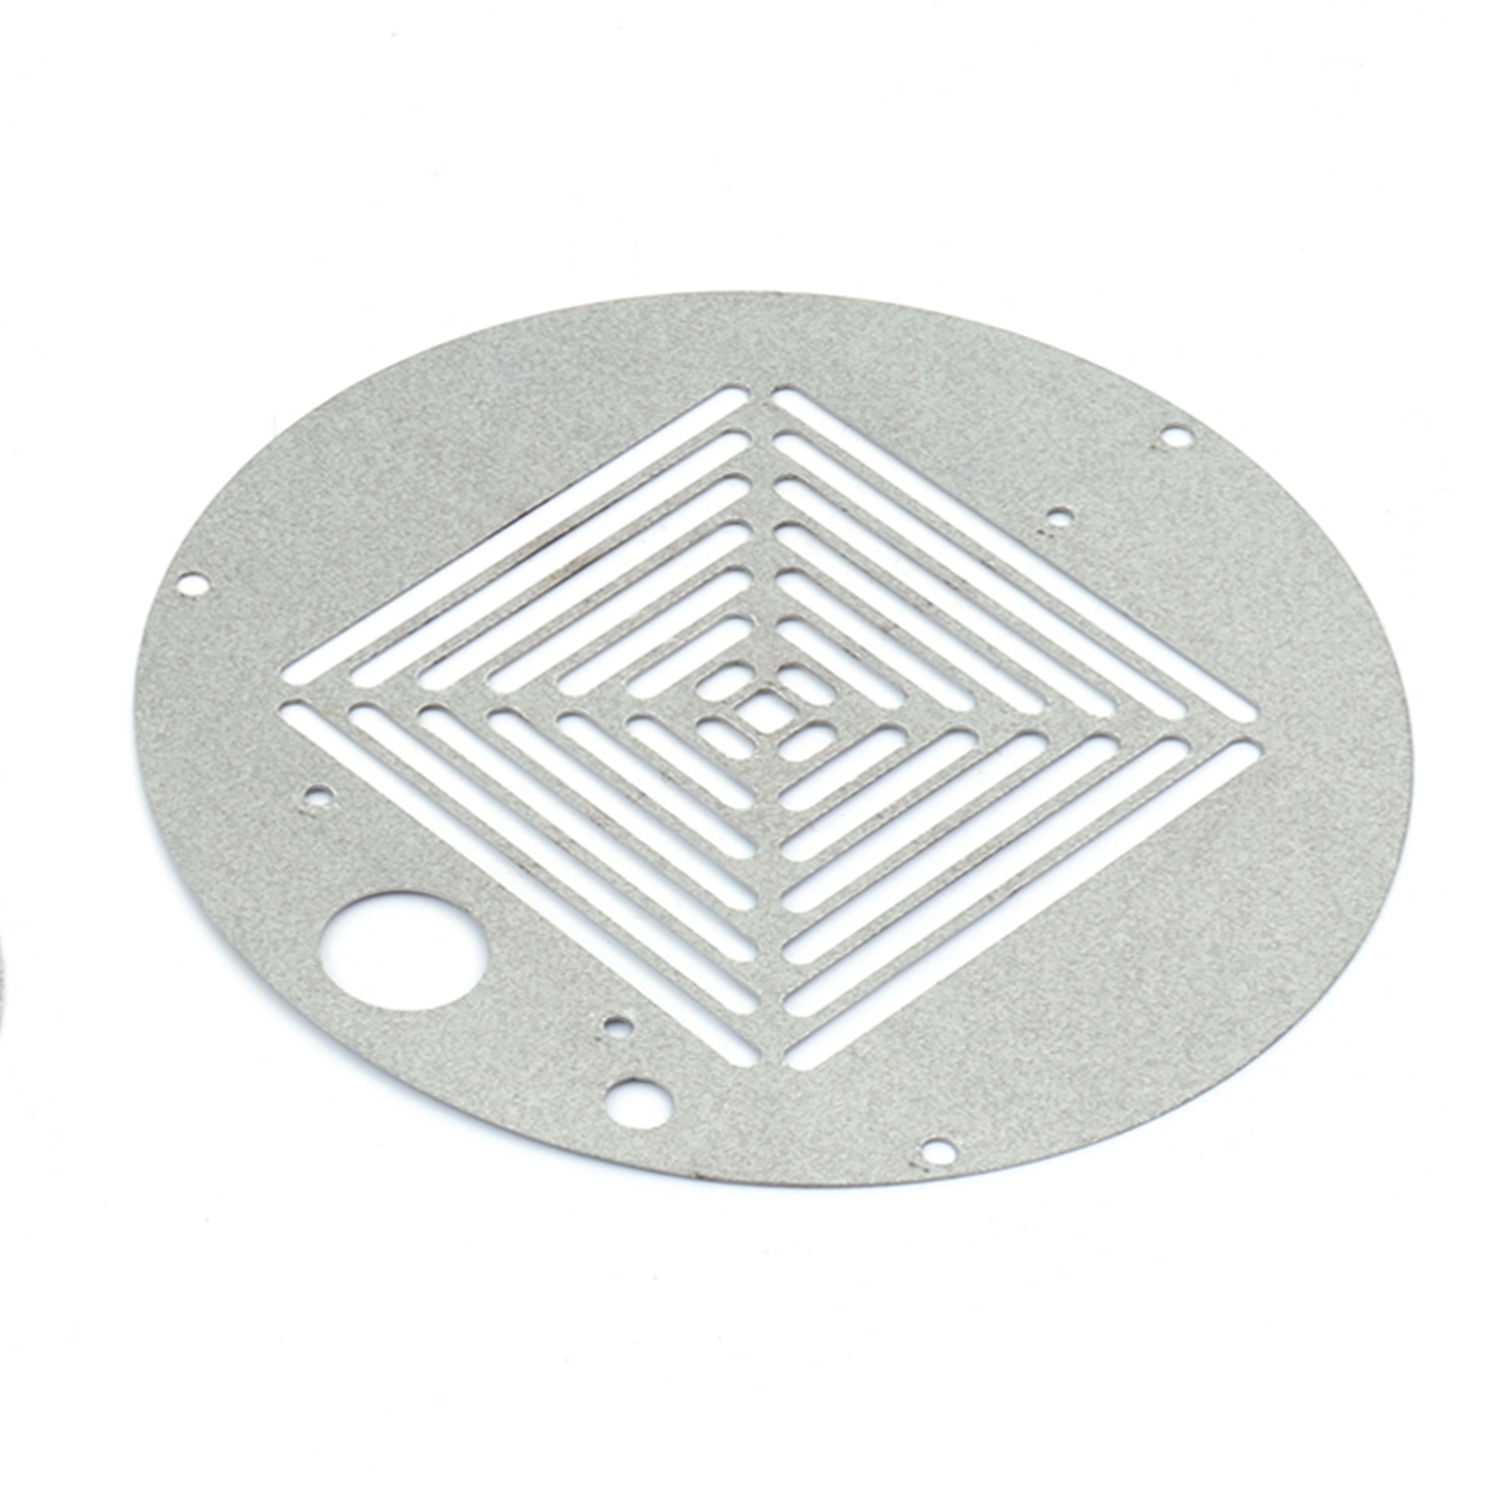 China professional  metal forming parts stainless steel/aluminum laser cutting service OEM